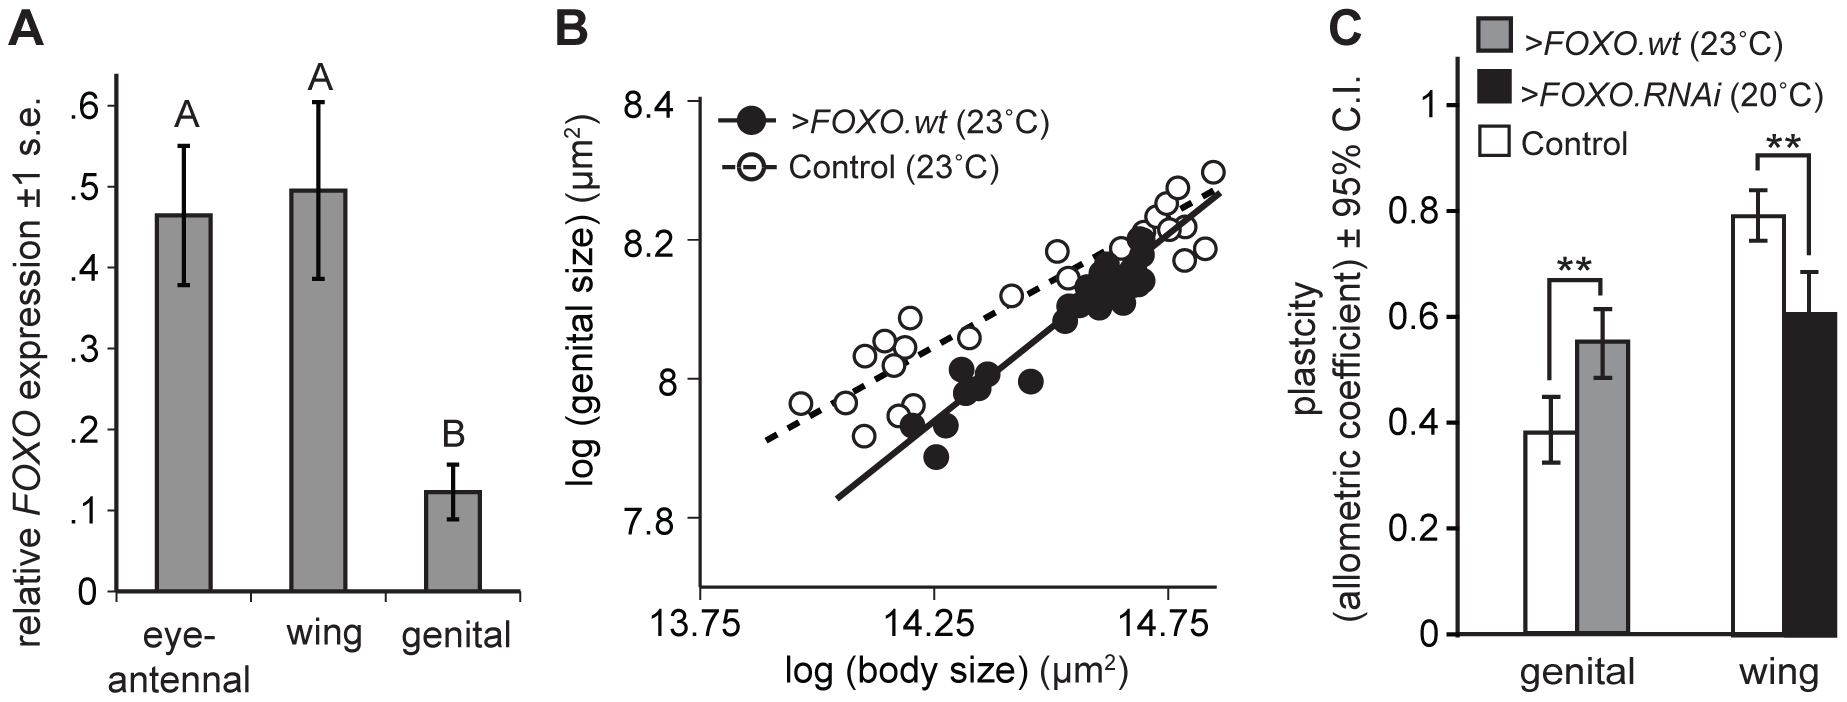 Organ-specific nutritional plasticity is regulated by differential expression of <i>FOXO</i>.